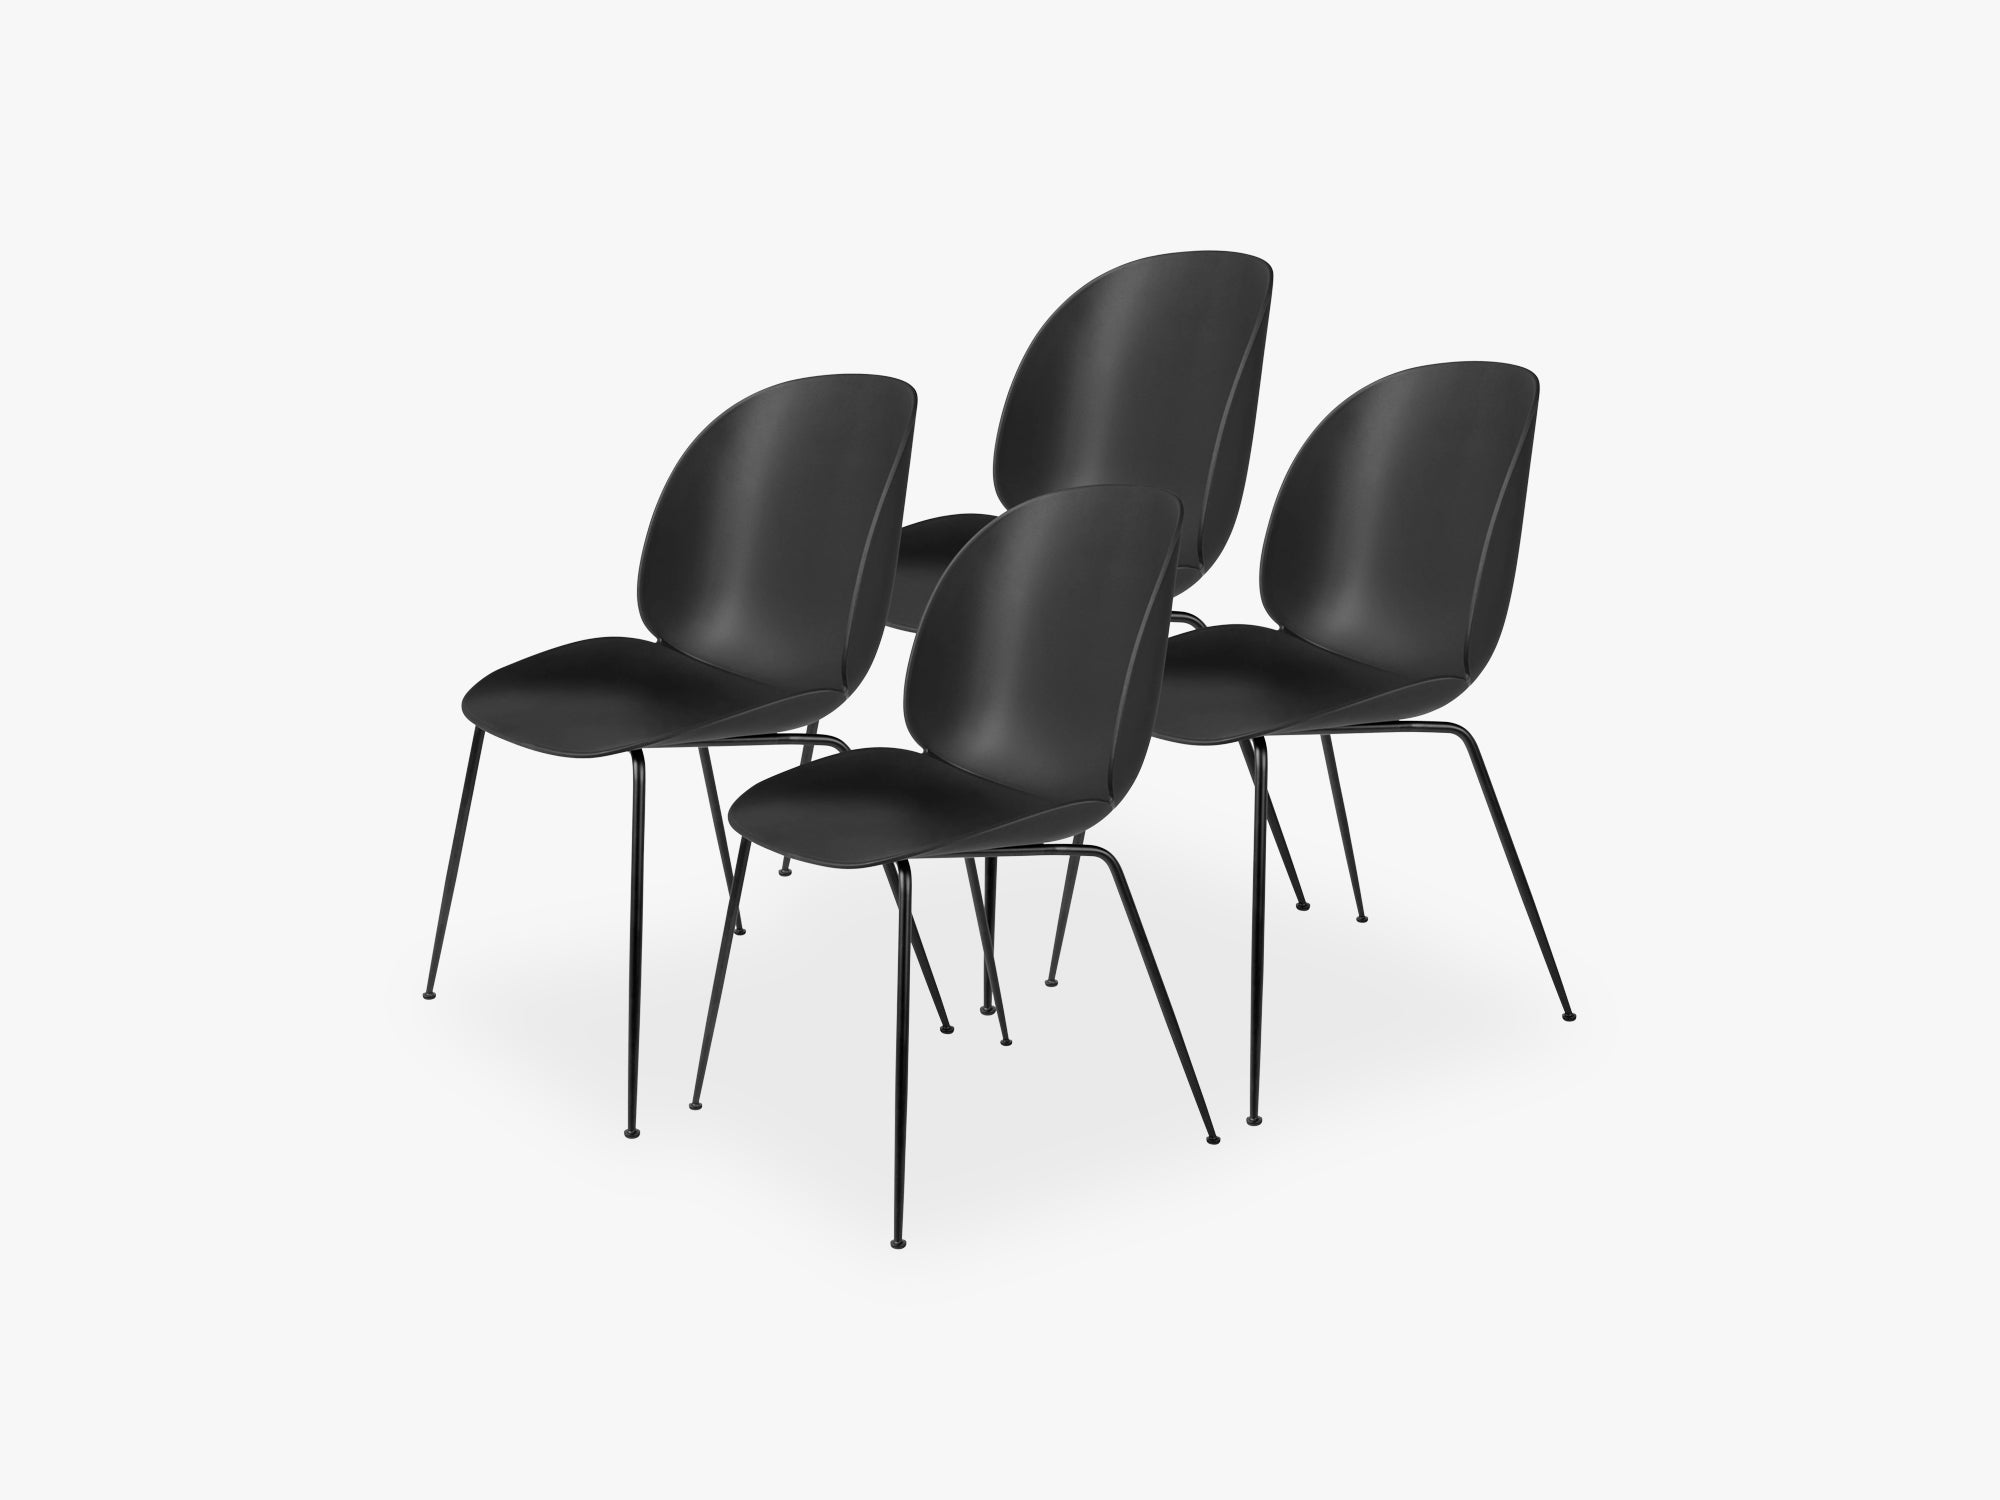 Beetle Dining Chair 4 pcs - Conic Black Matt Base, Black fra GUBI